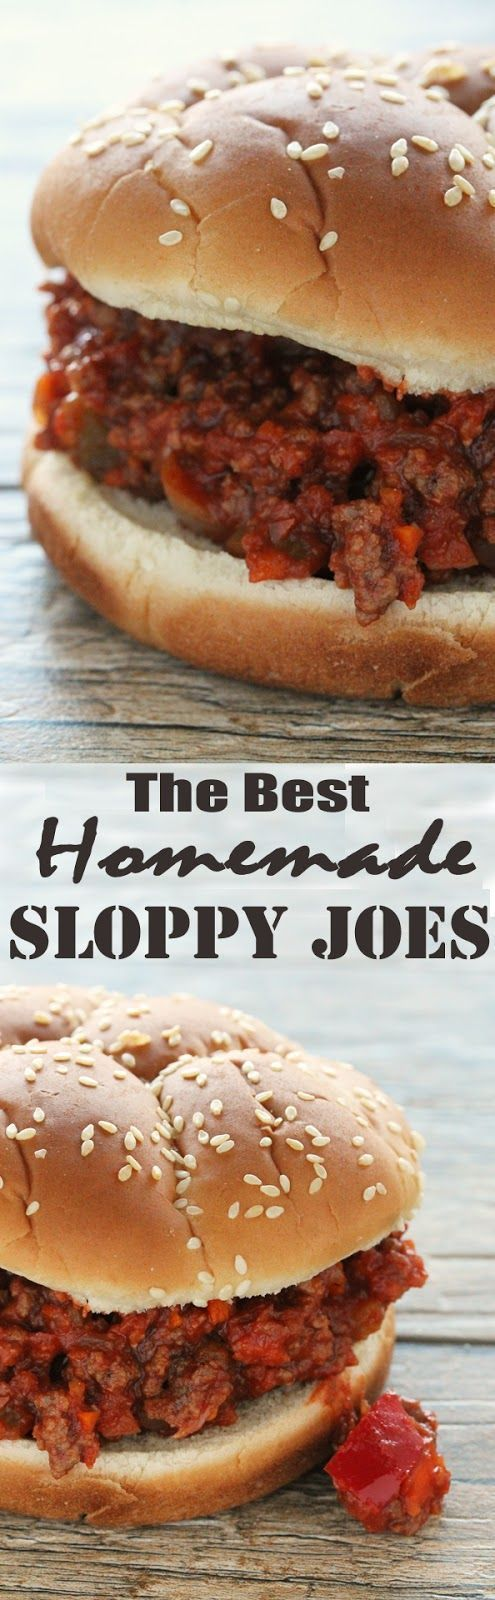 The Best Homemade Sloppy Joes Ever from The Stay At Home Chef